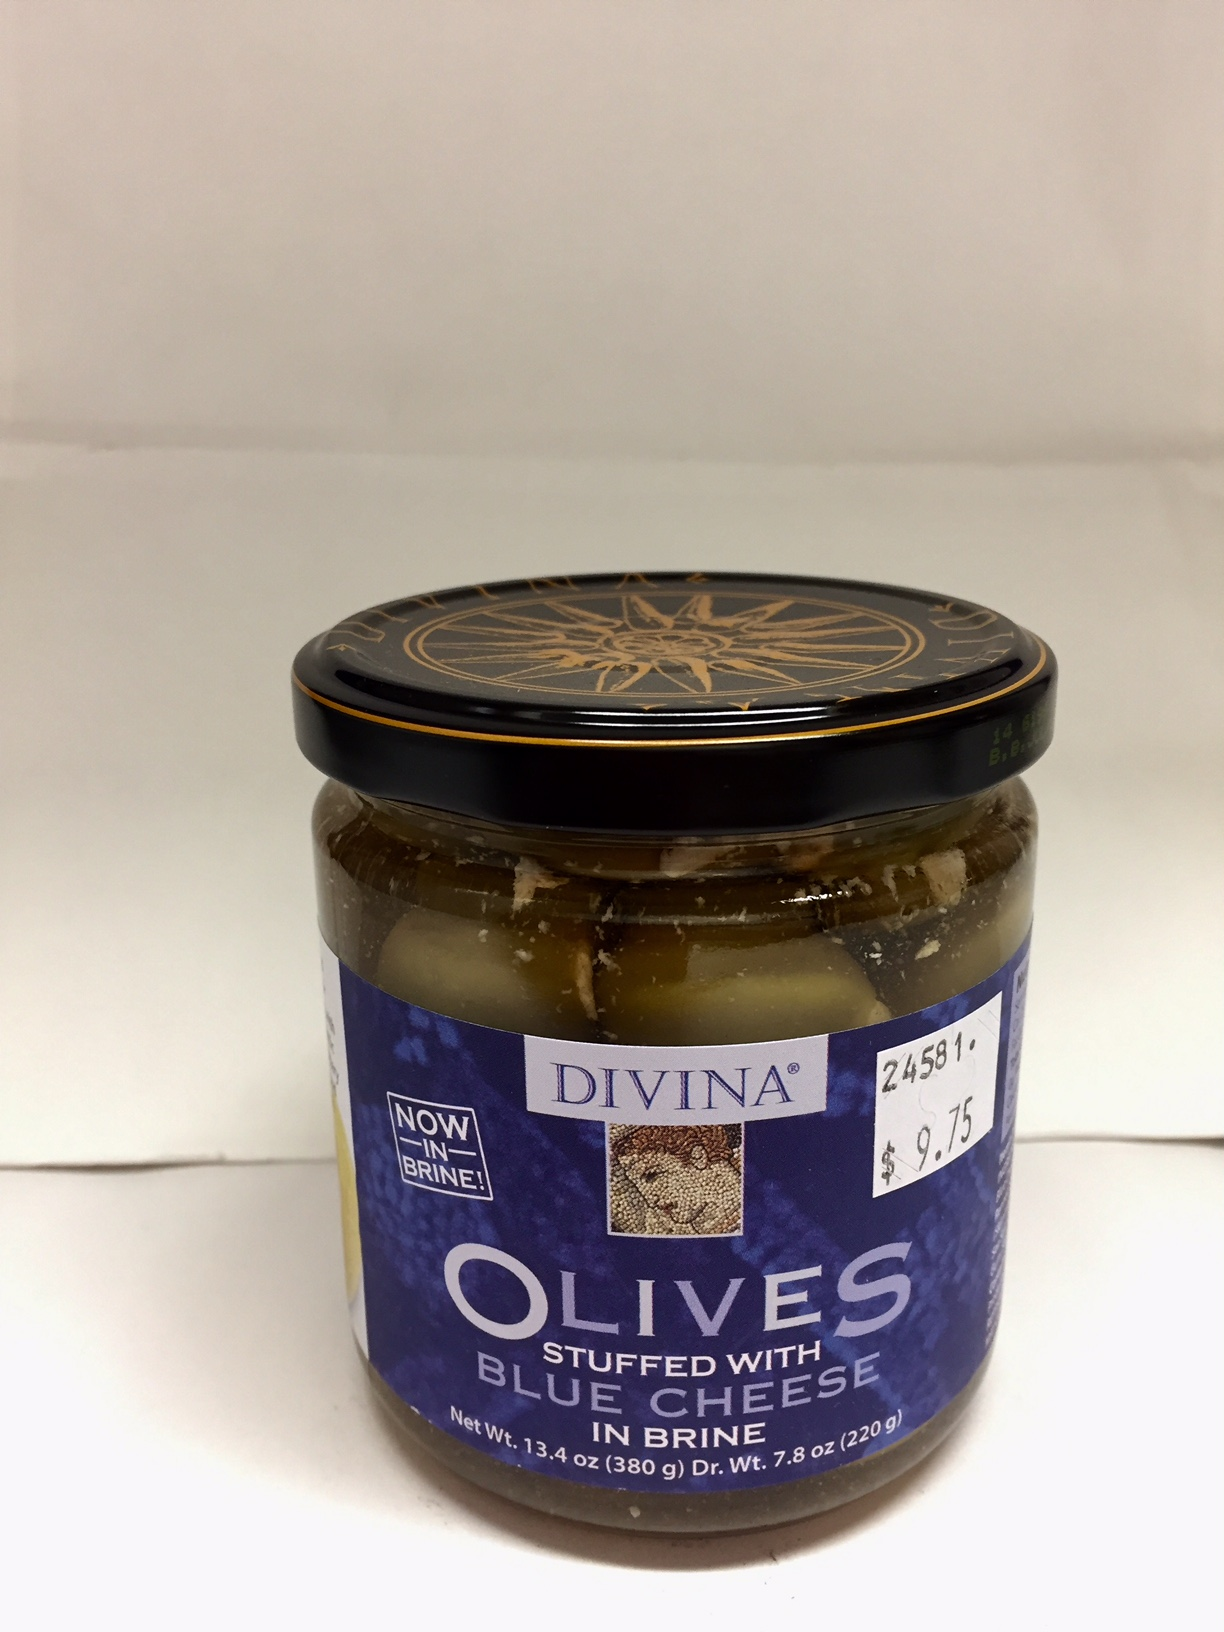 Olives Stuffed with Blue Cheese in Brine